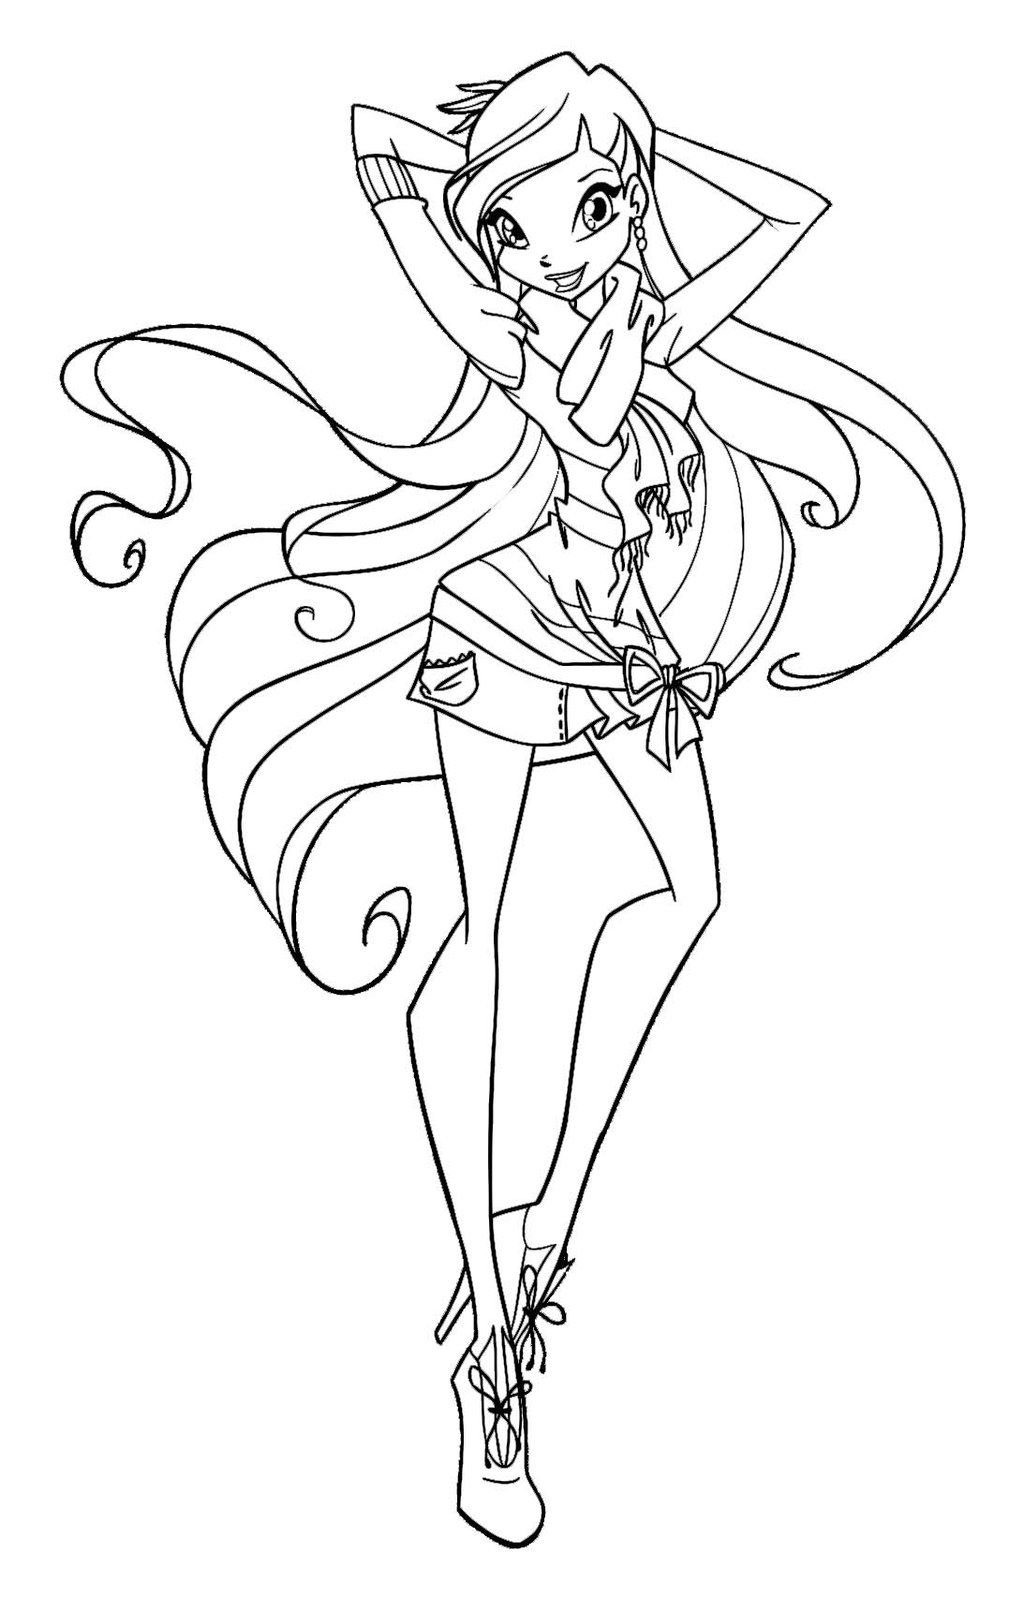 coloring pages WINX - Google Search | Andy | Pinterest | Google search